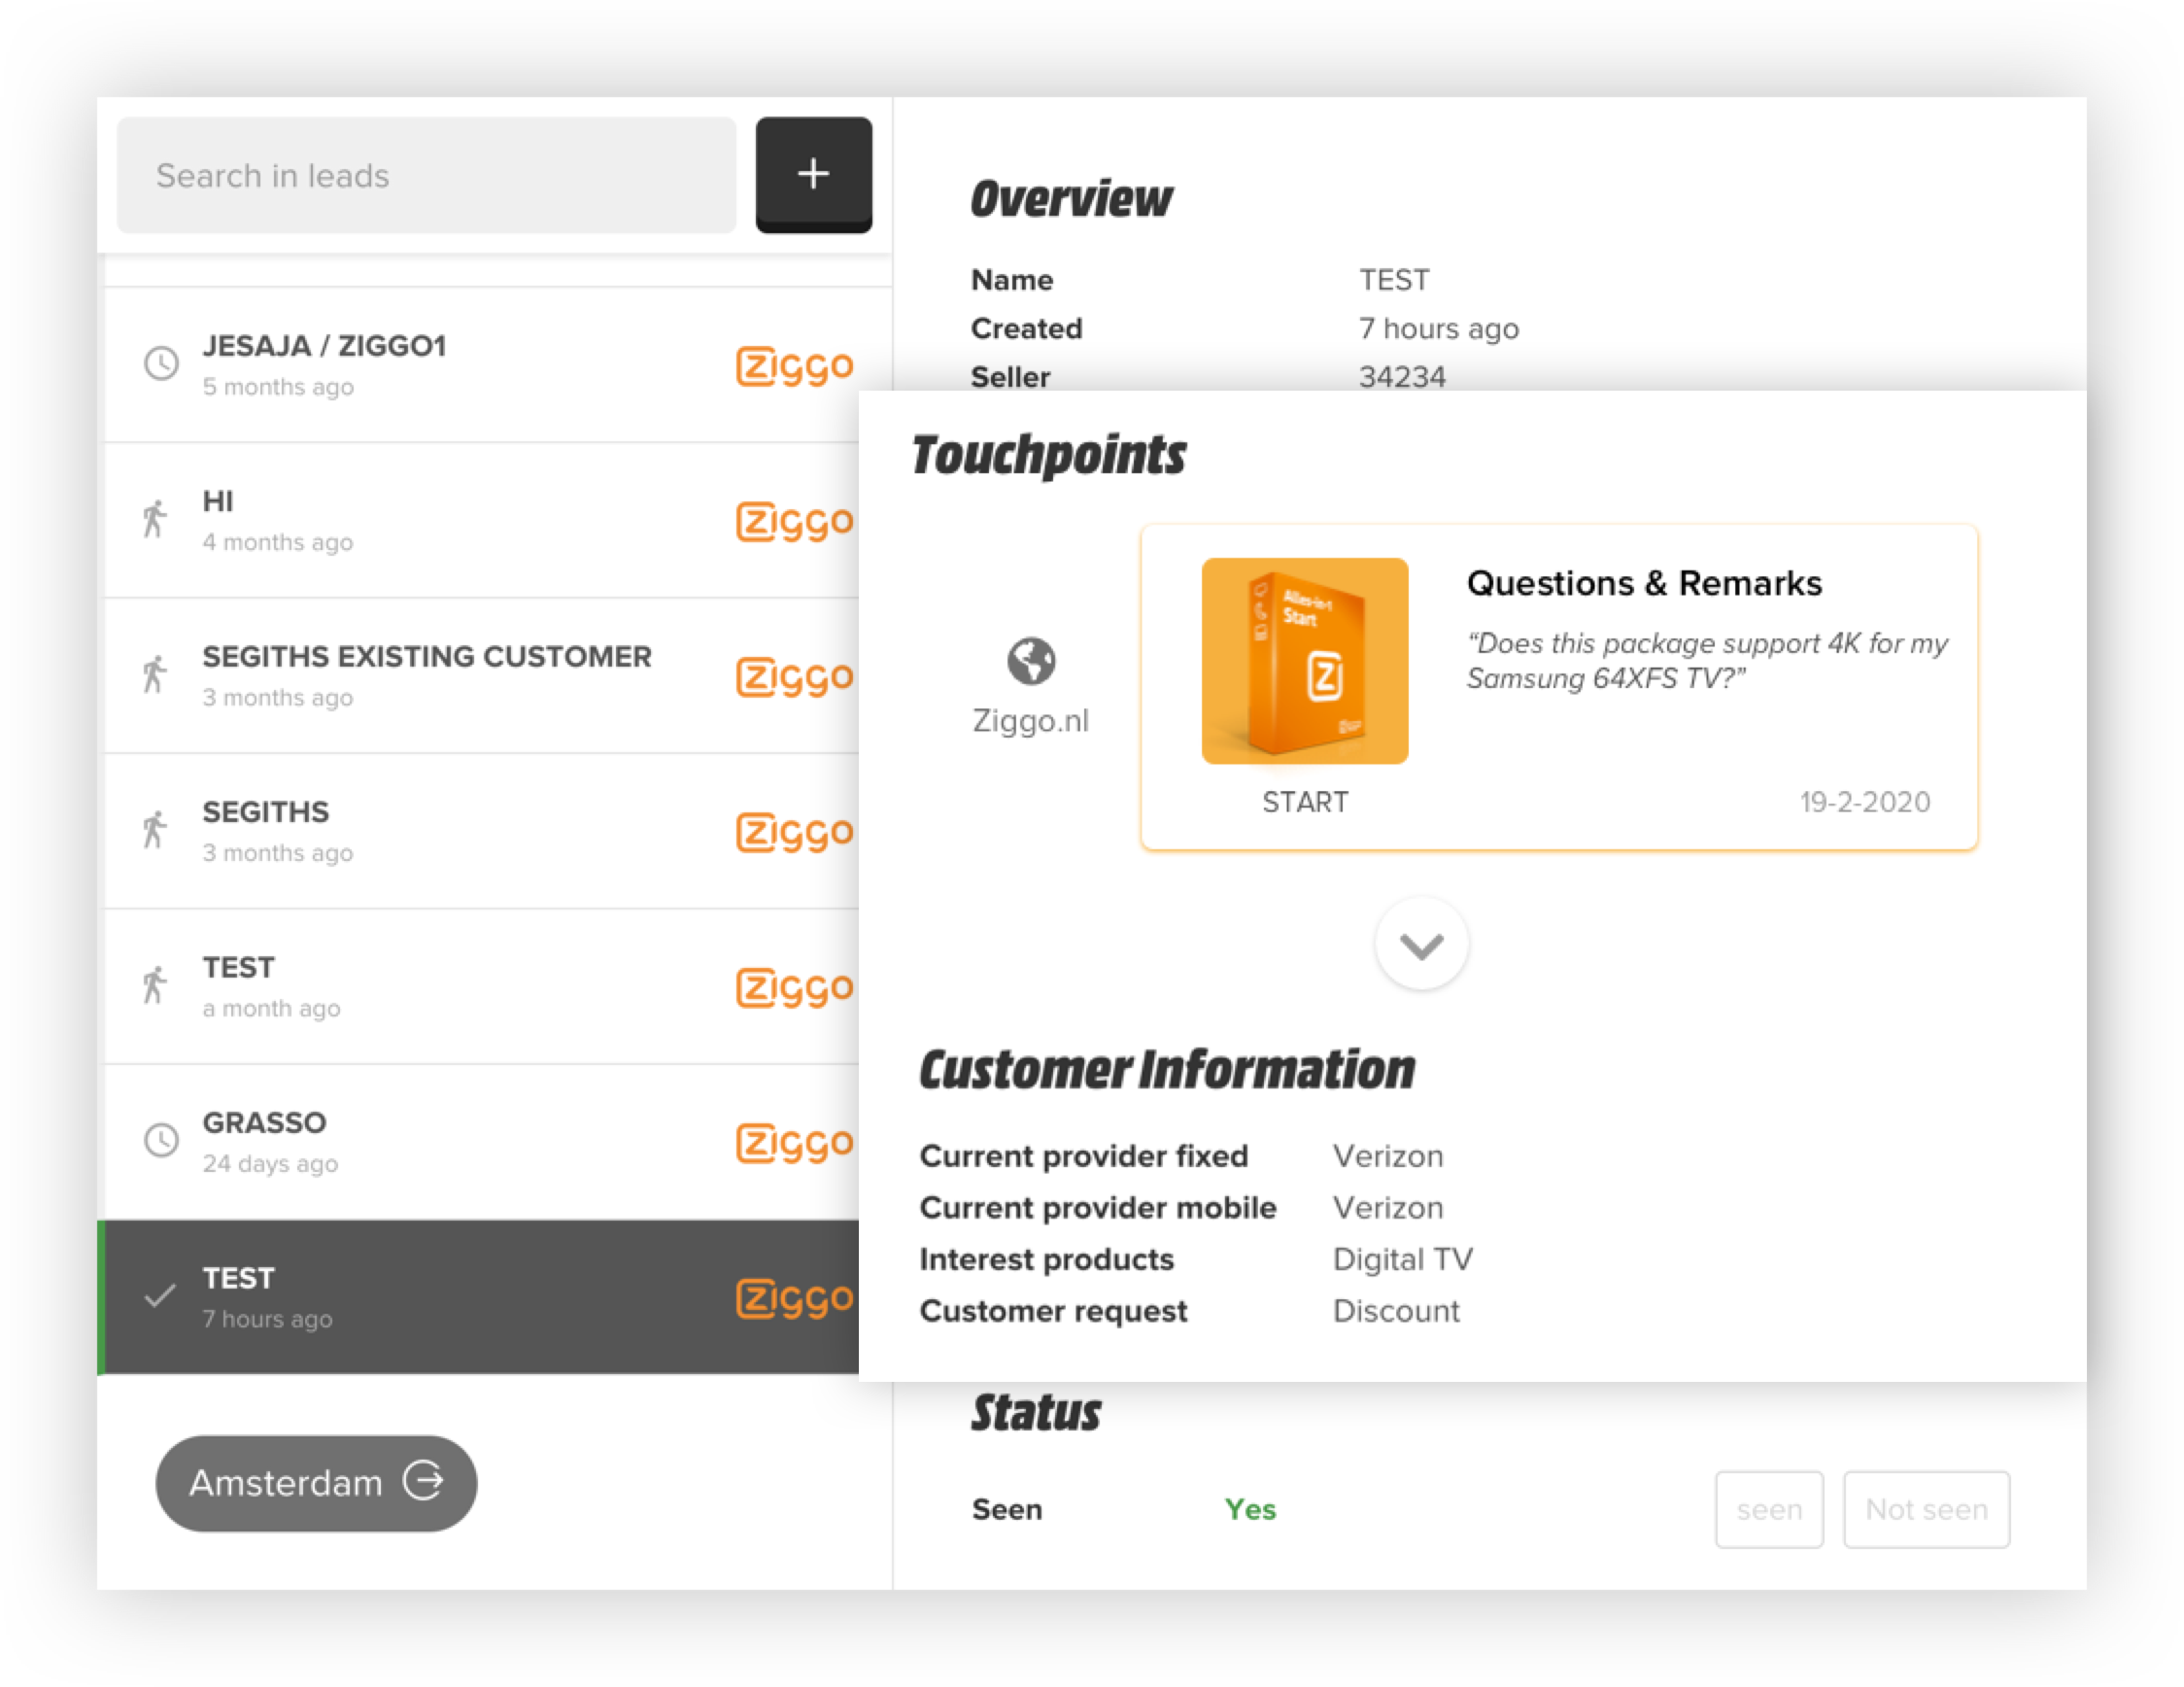 See appointments and the customer's preferences